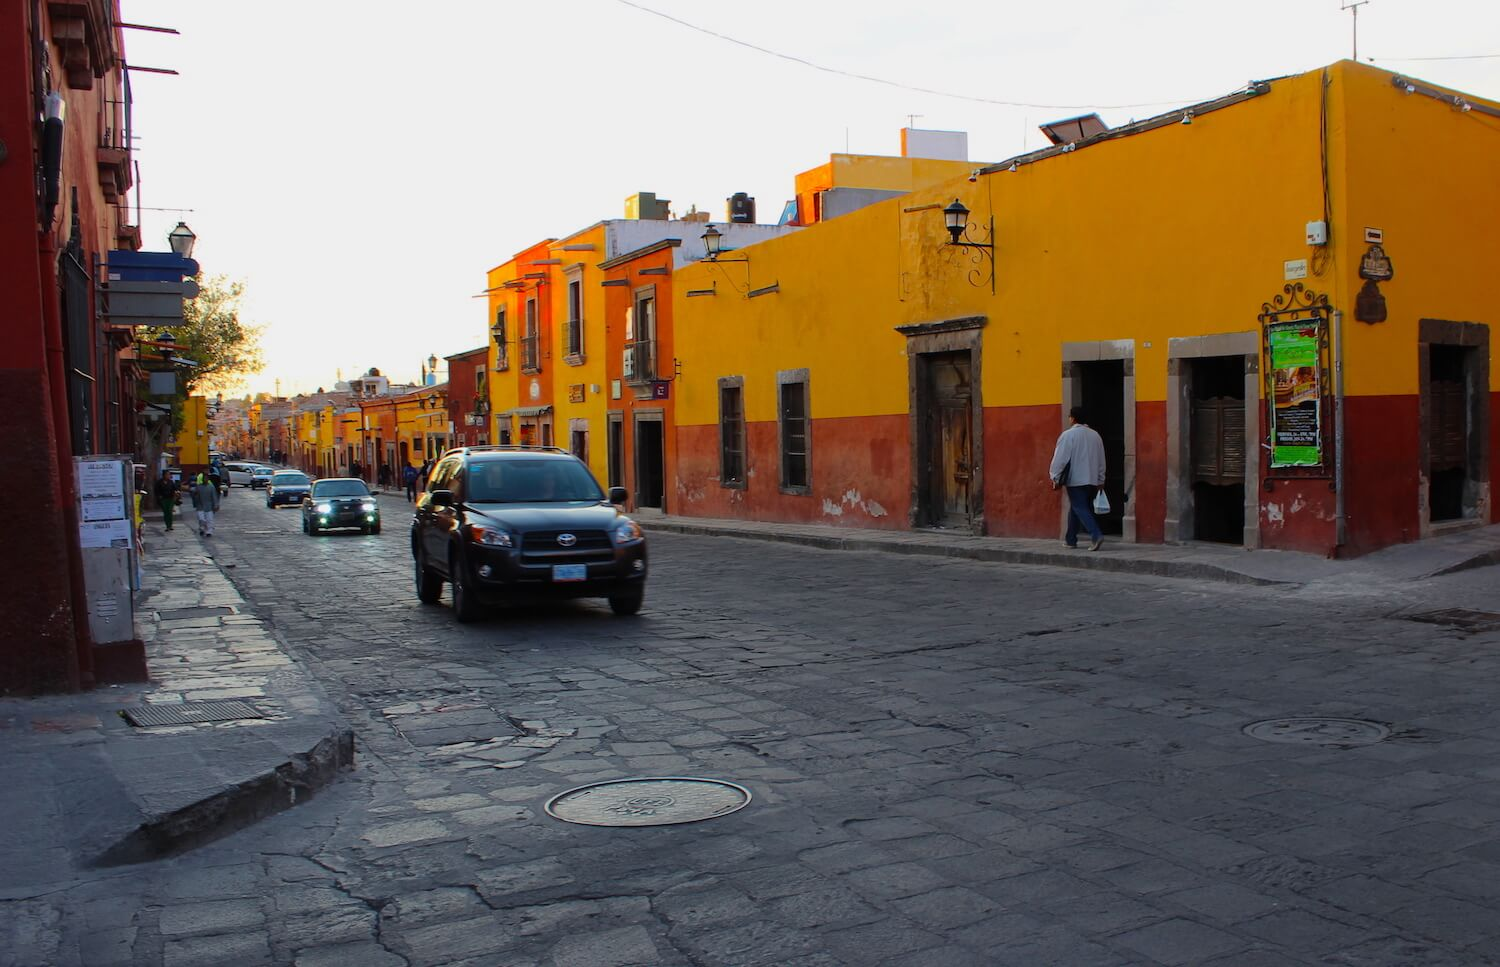 san miguel de allende street at sunset beautiful